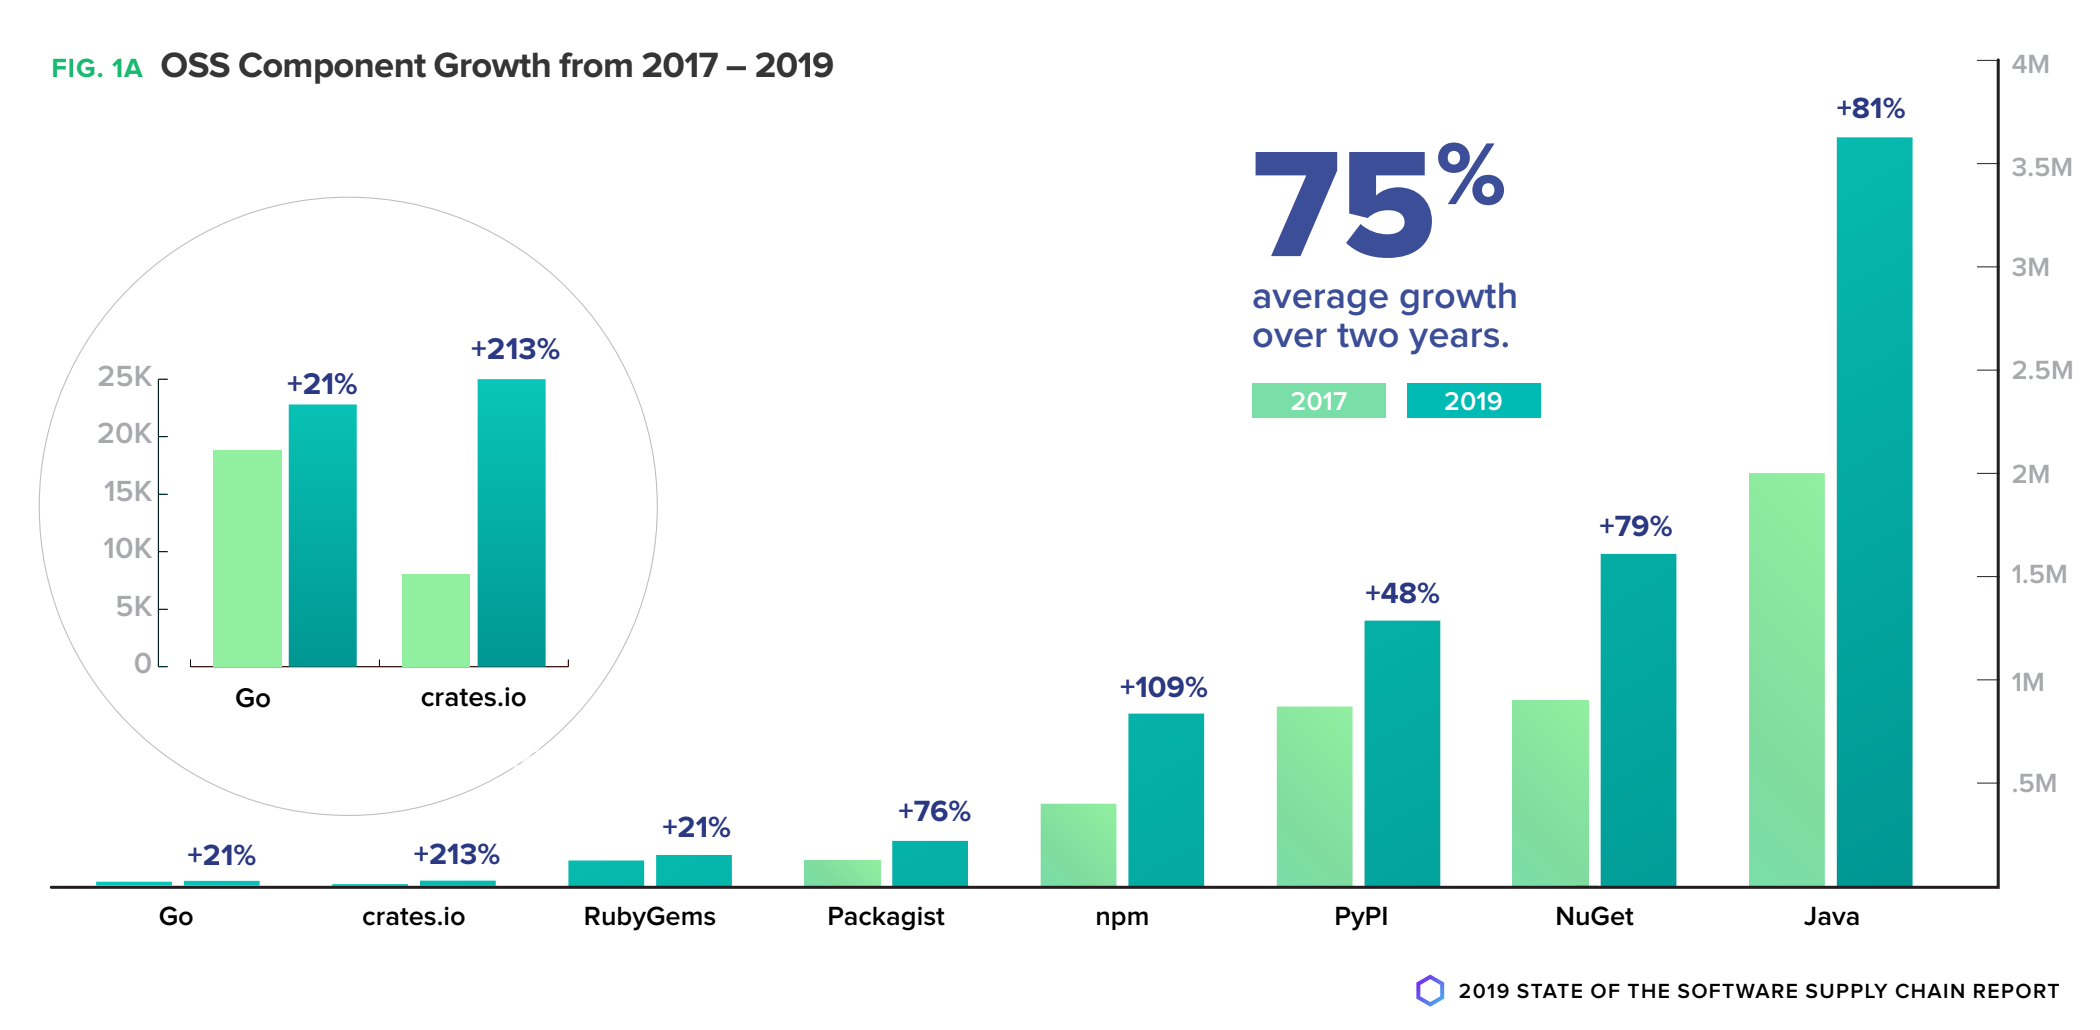 java growth for npm microsoft acquistion